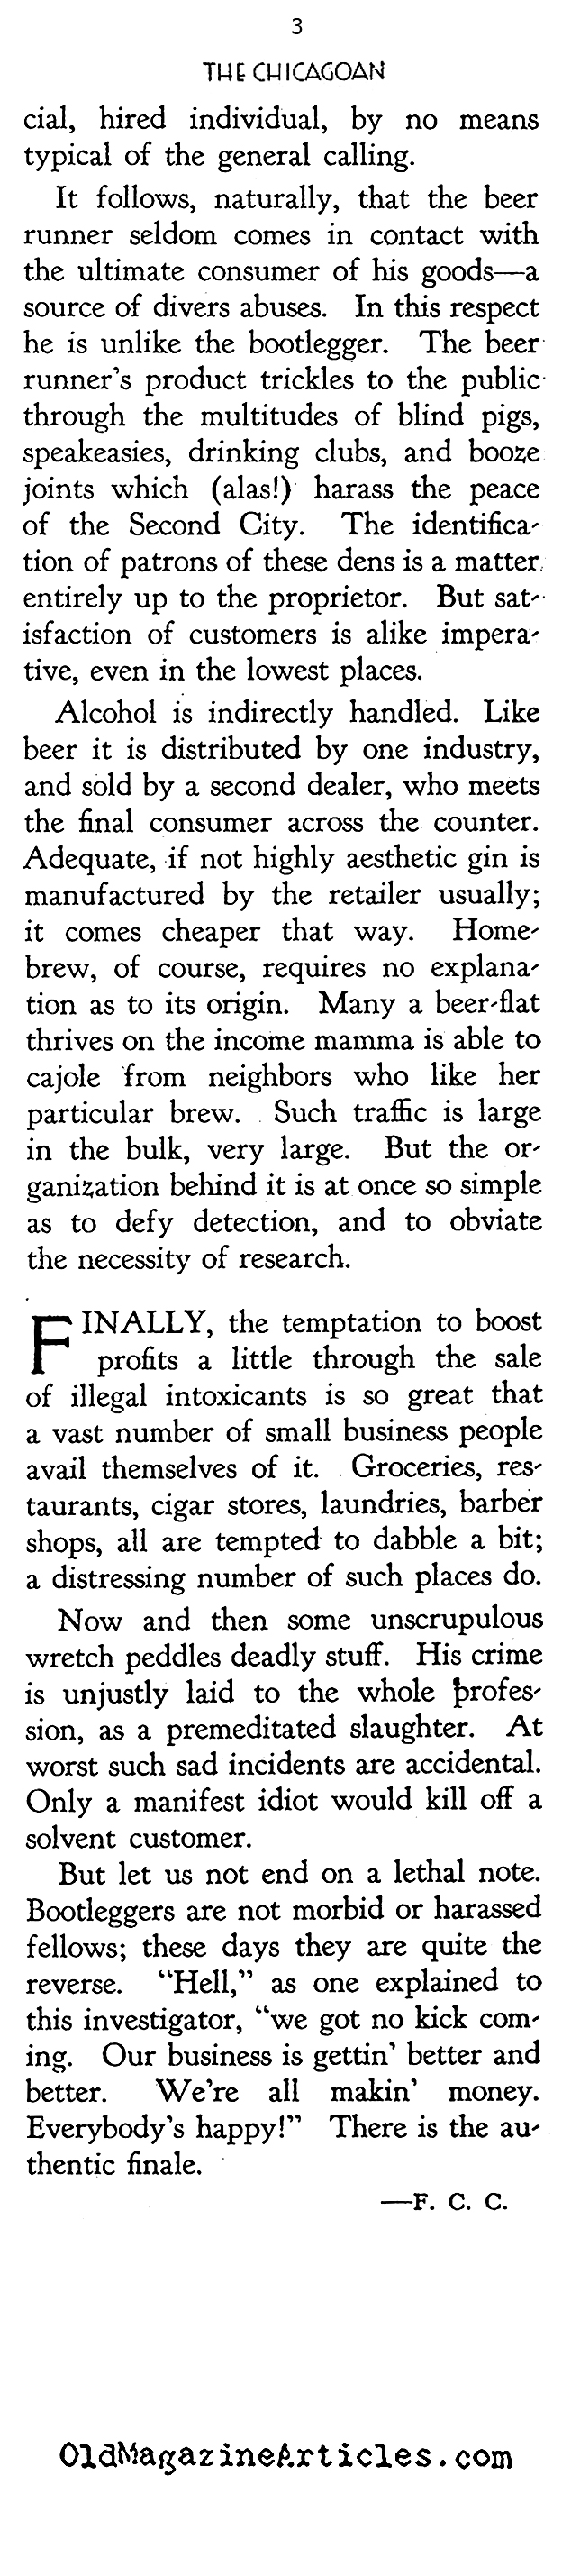 Prohibition - Chicago Style (The Chicagoan, 1927)